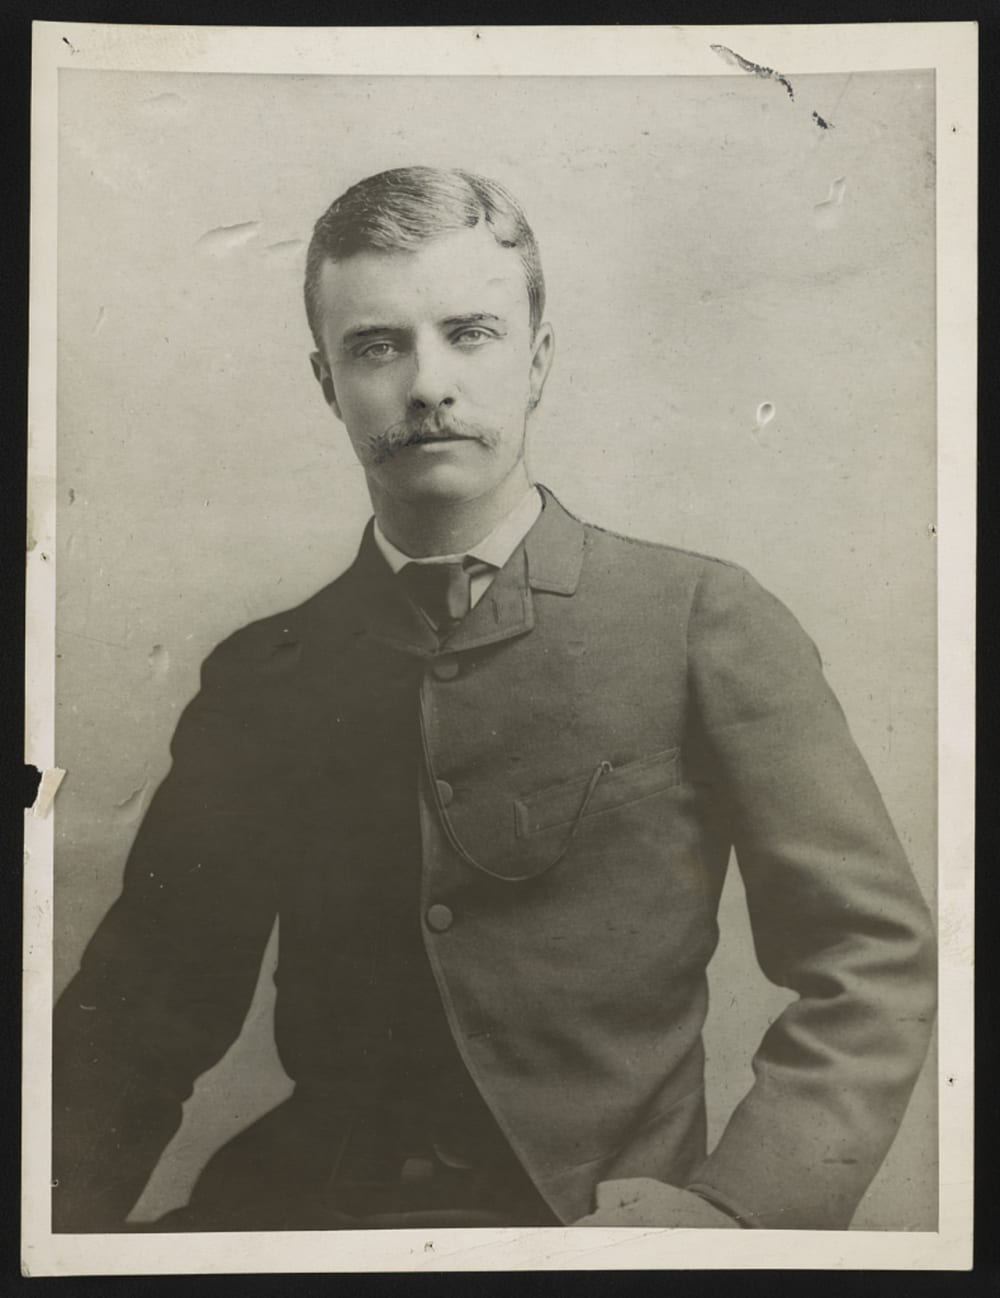 5. Theodore Roosevelt as a Young New York State Assemblyman